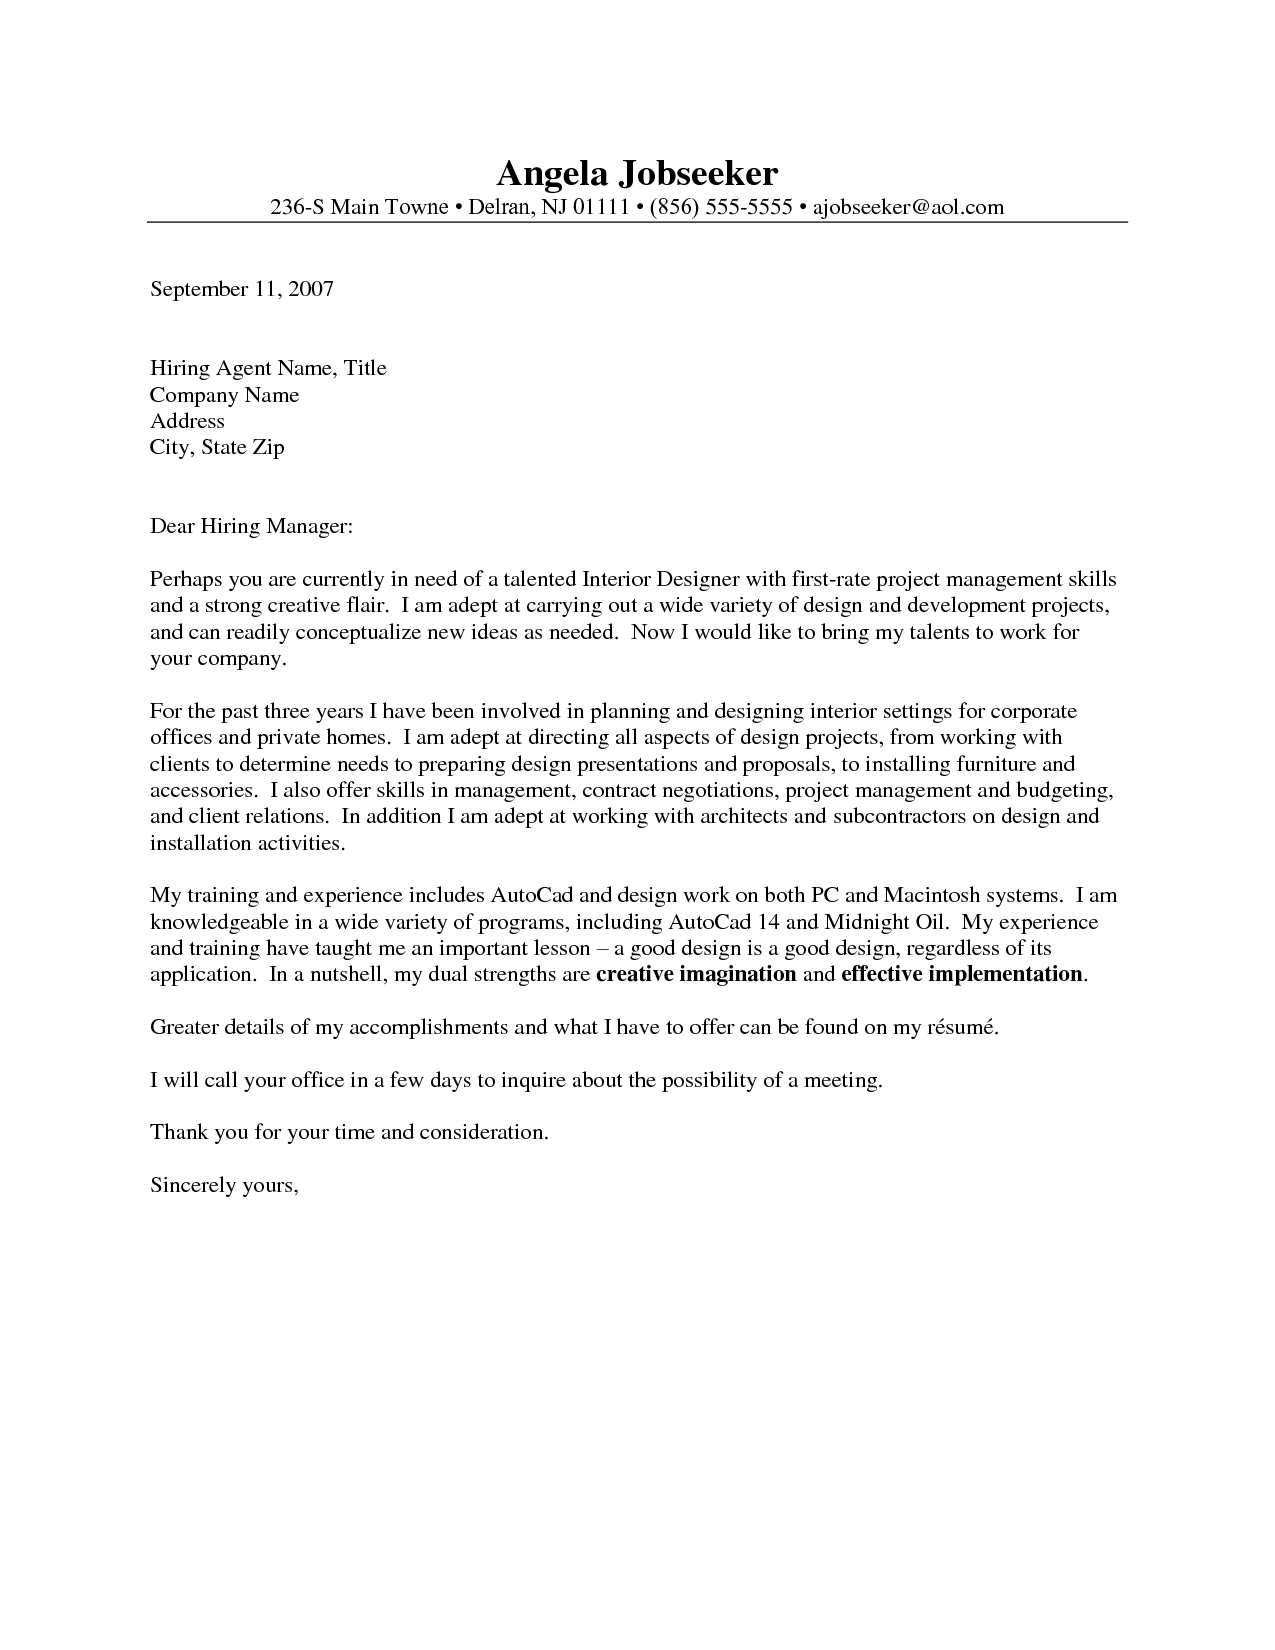 Cute Cover Letter Template - Outstanding Cover Letter Examples